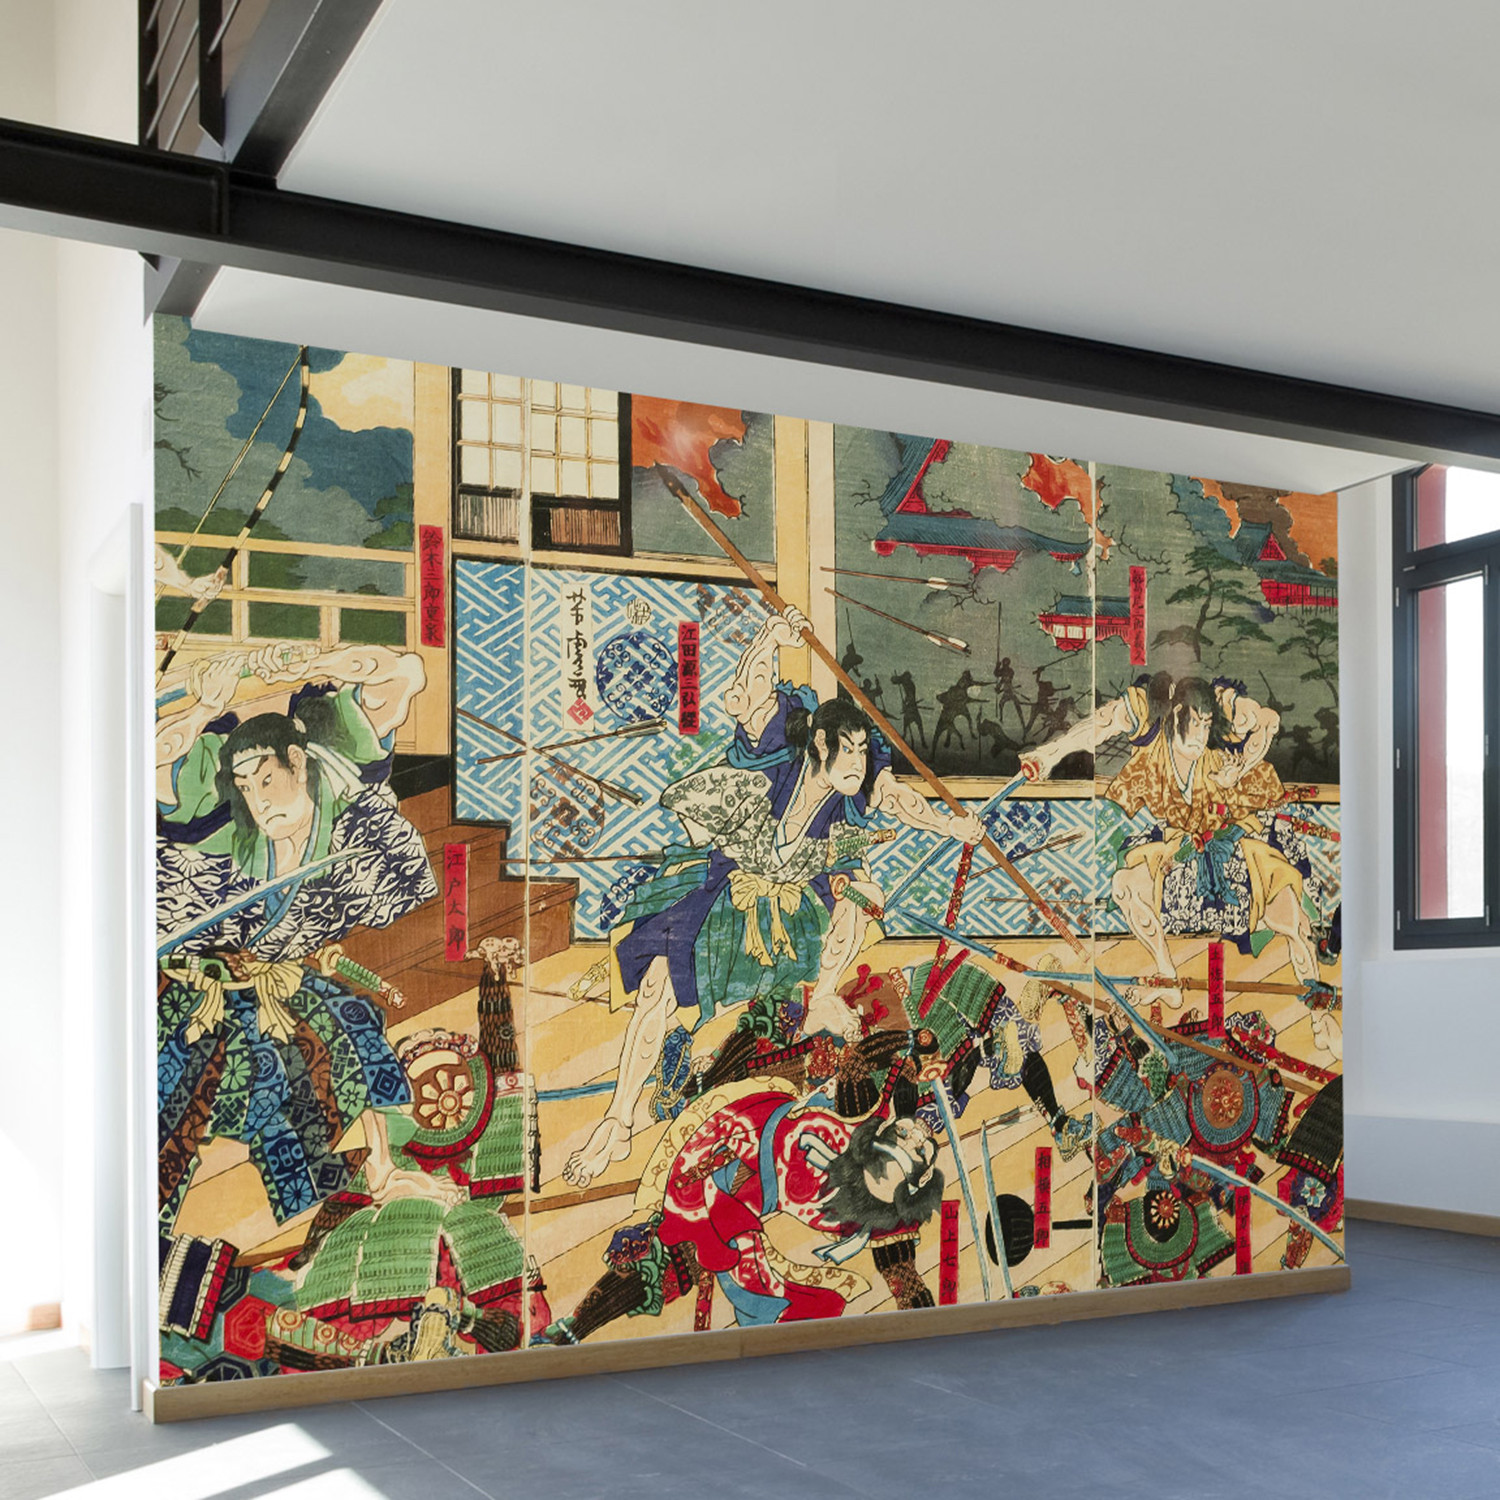 Vintage japanese battle wall mural decal 4 panels 93 width vintage japanese battle wall mural decal 4 panels 93 width amipublicfo Gallery